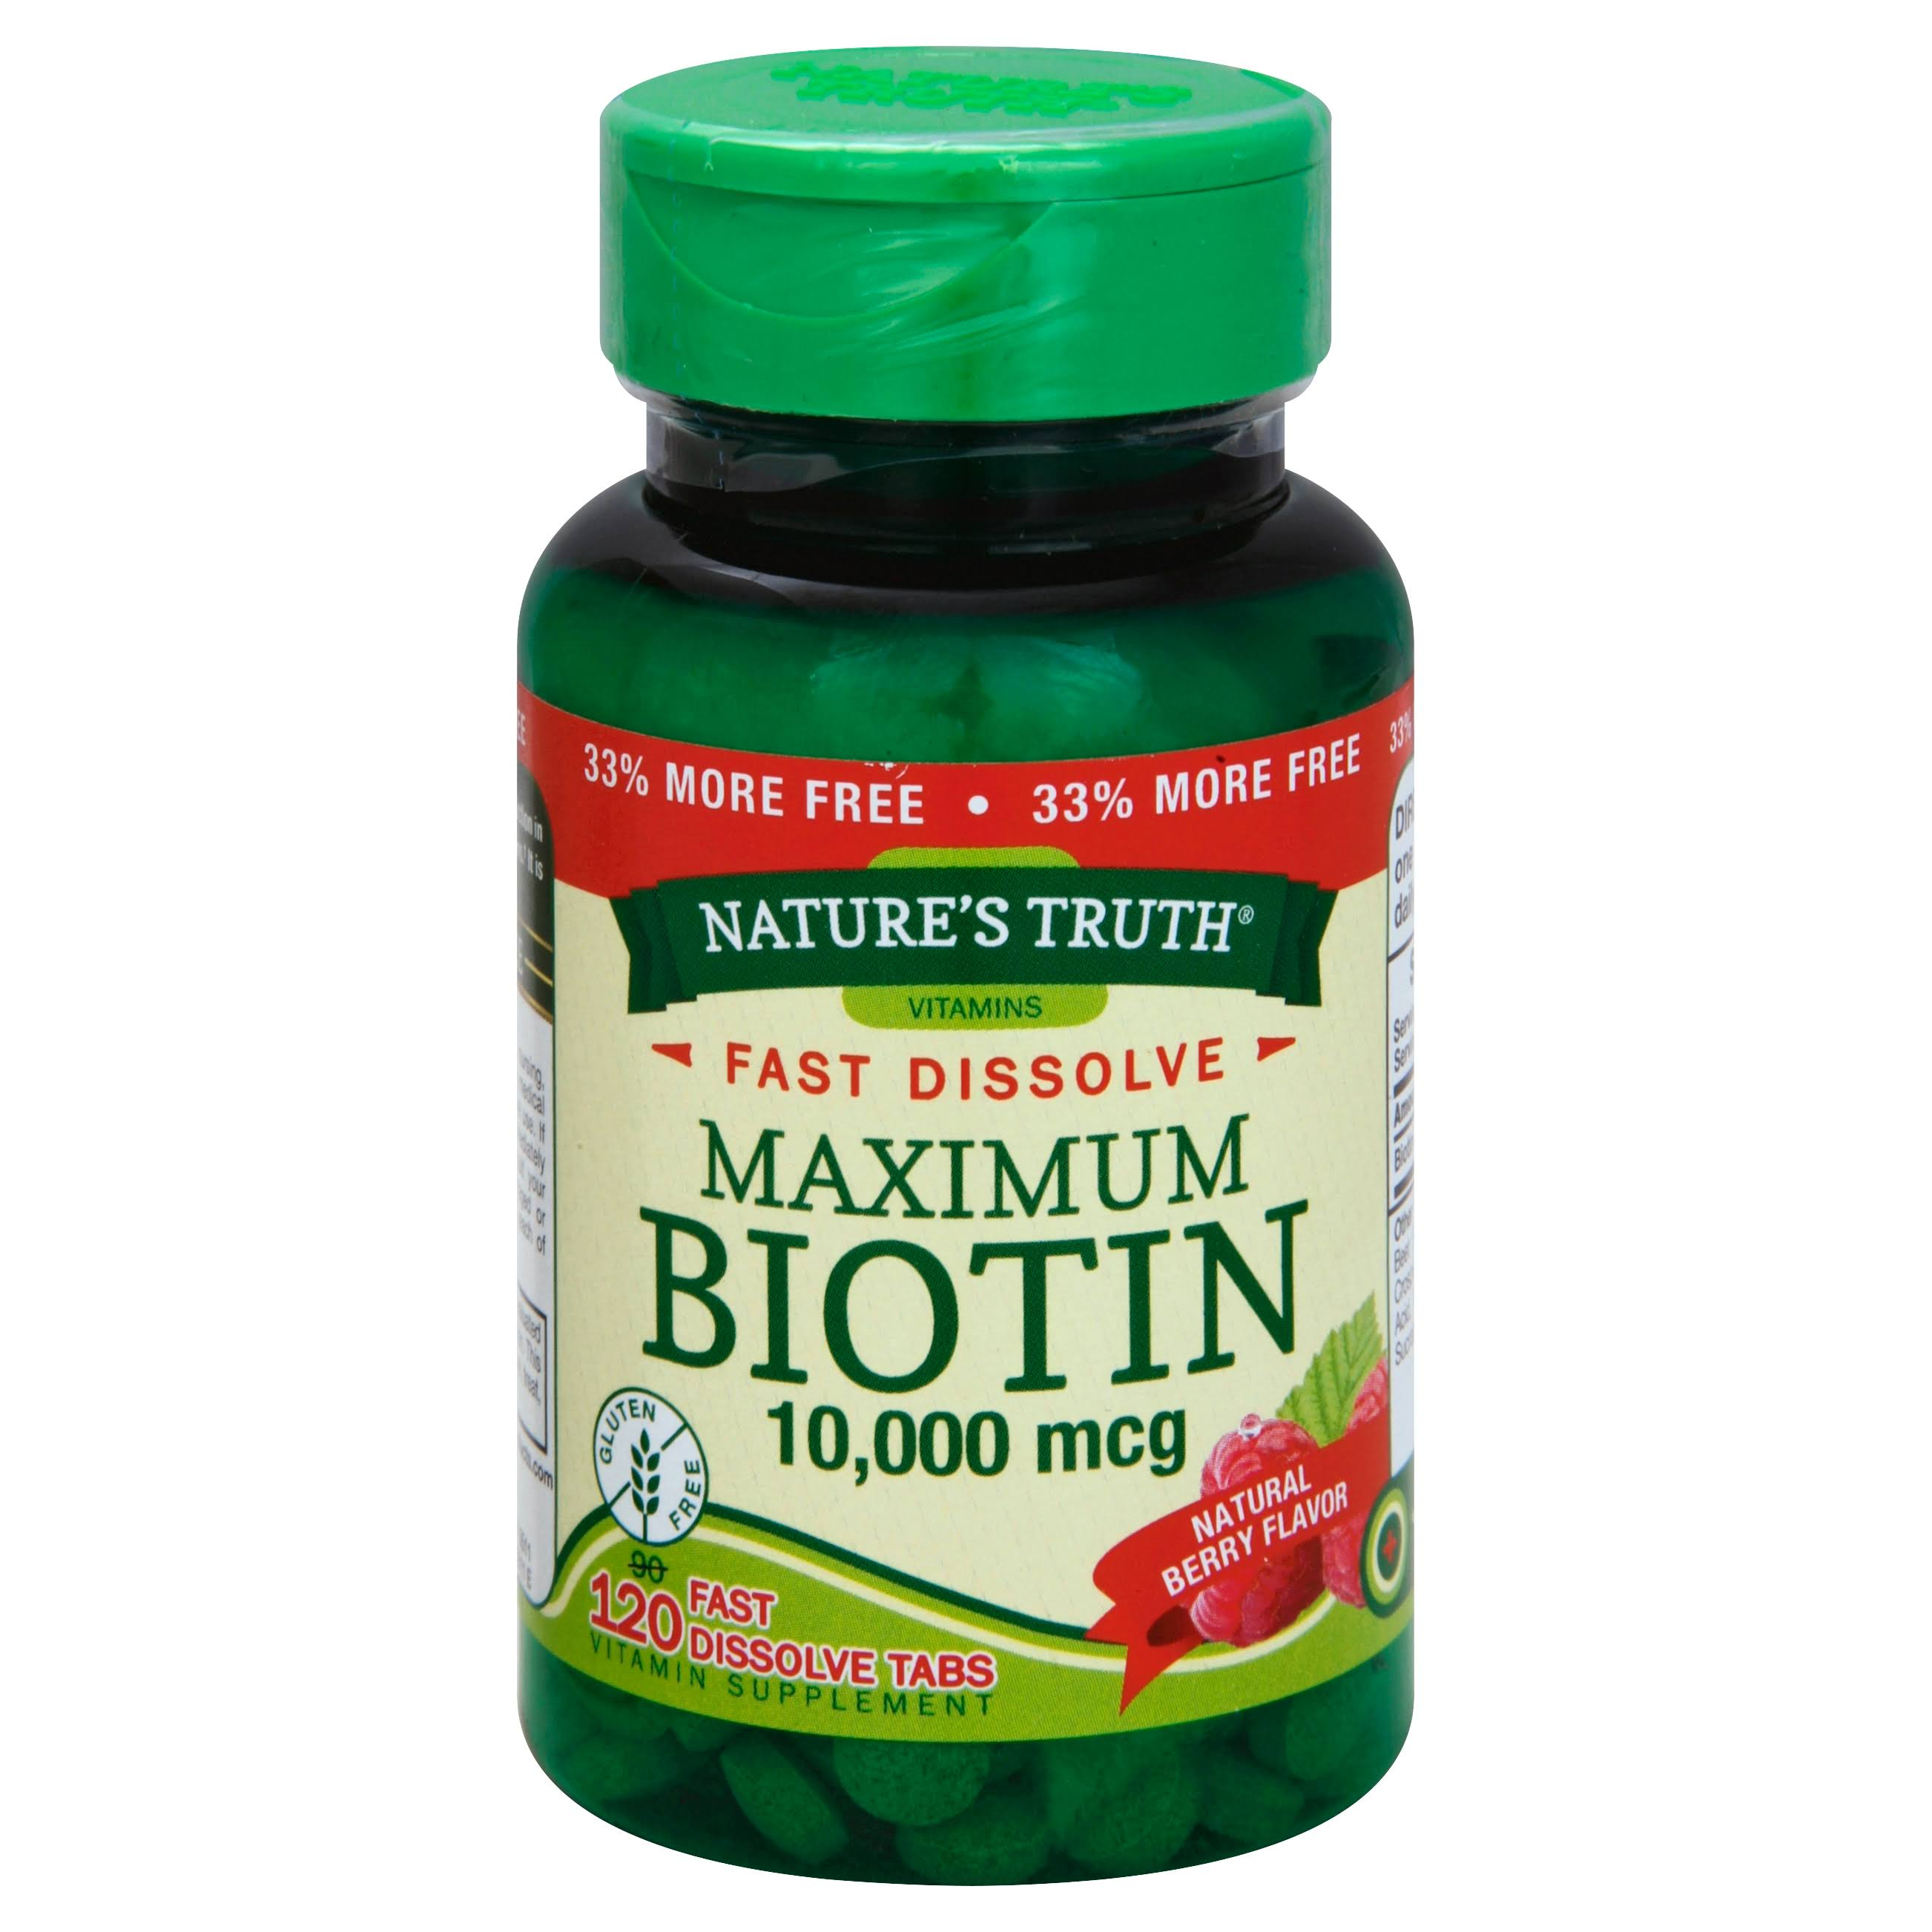 Nature's Truth Maximum Biotin Supplement - 10,000mcg, 120 Fast Dissolve Tabs, Berry